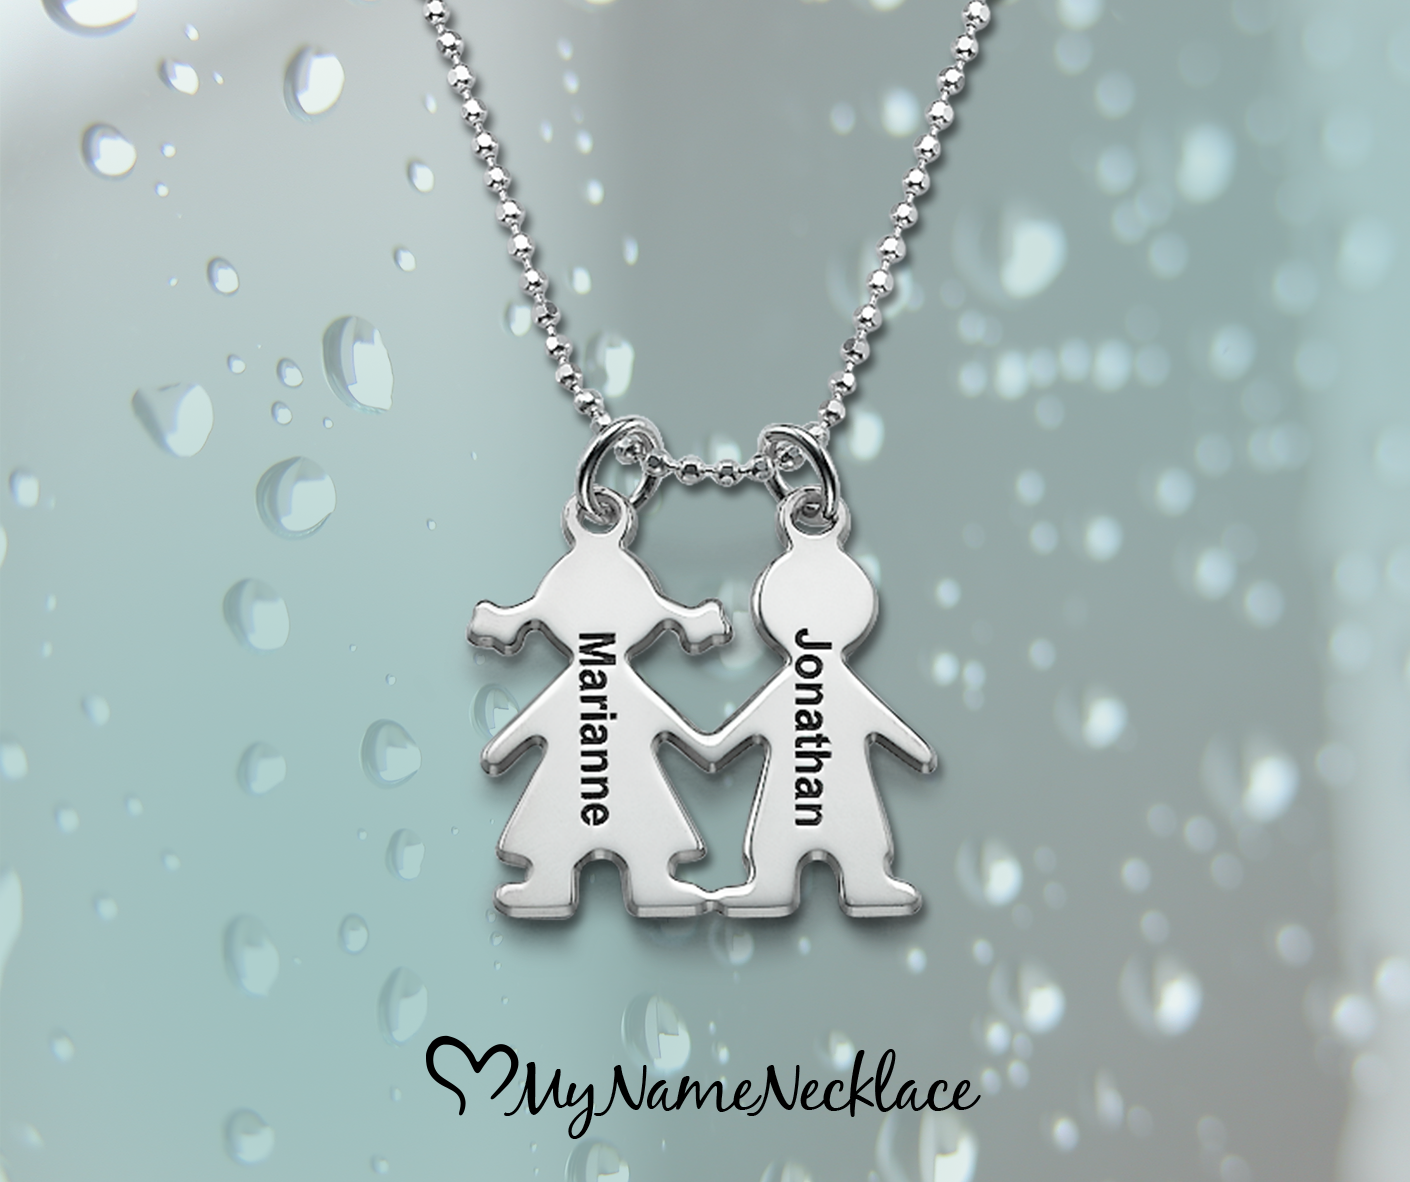 Have a reminder of your children wherever you go with our beautiful Kids Holding Hands Charms Necklace. It features two children with interlocking arms.